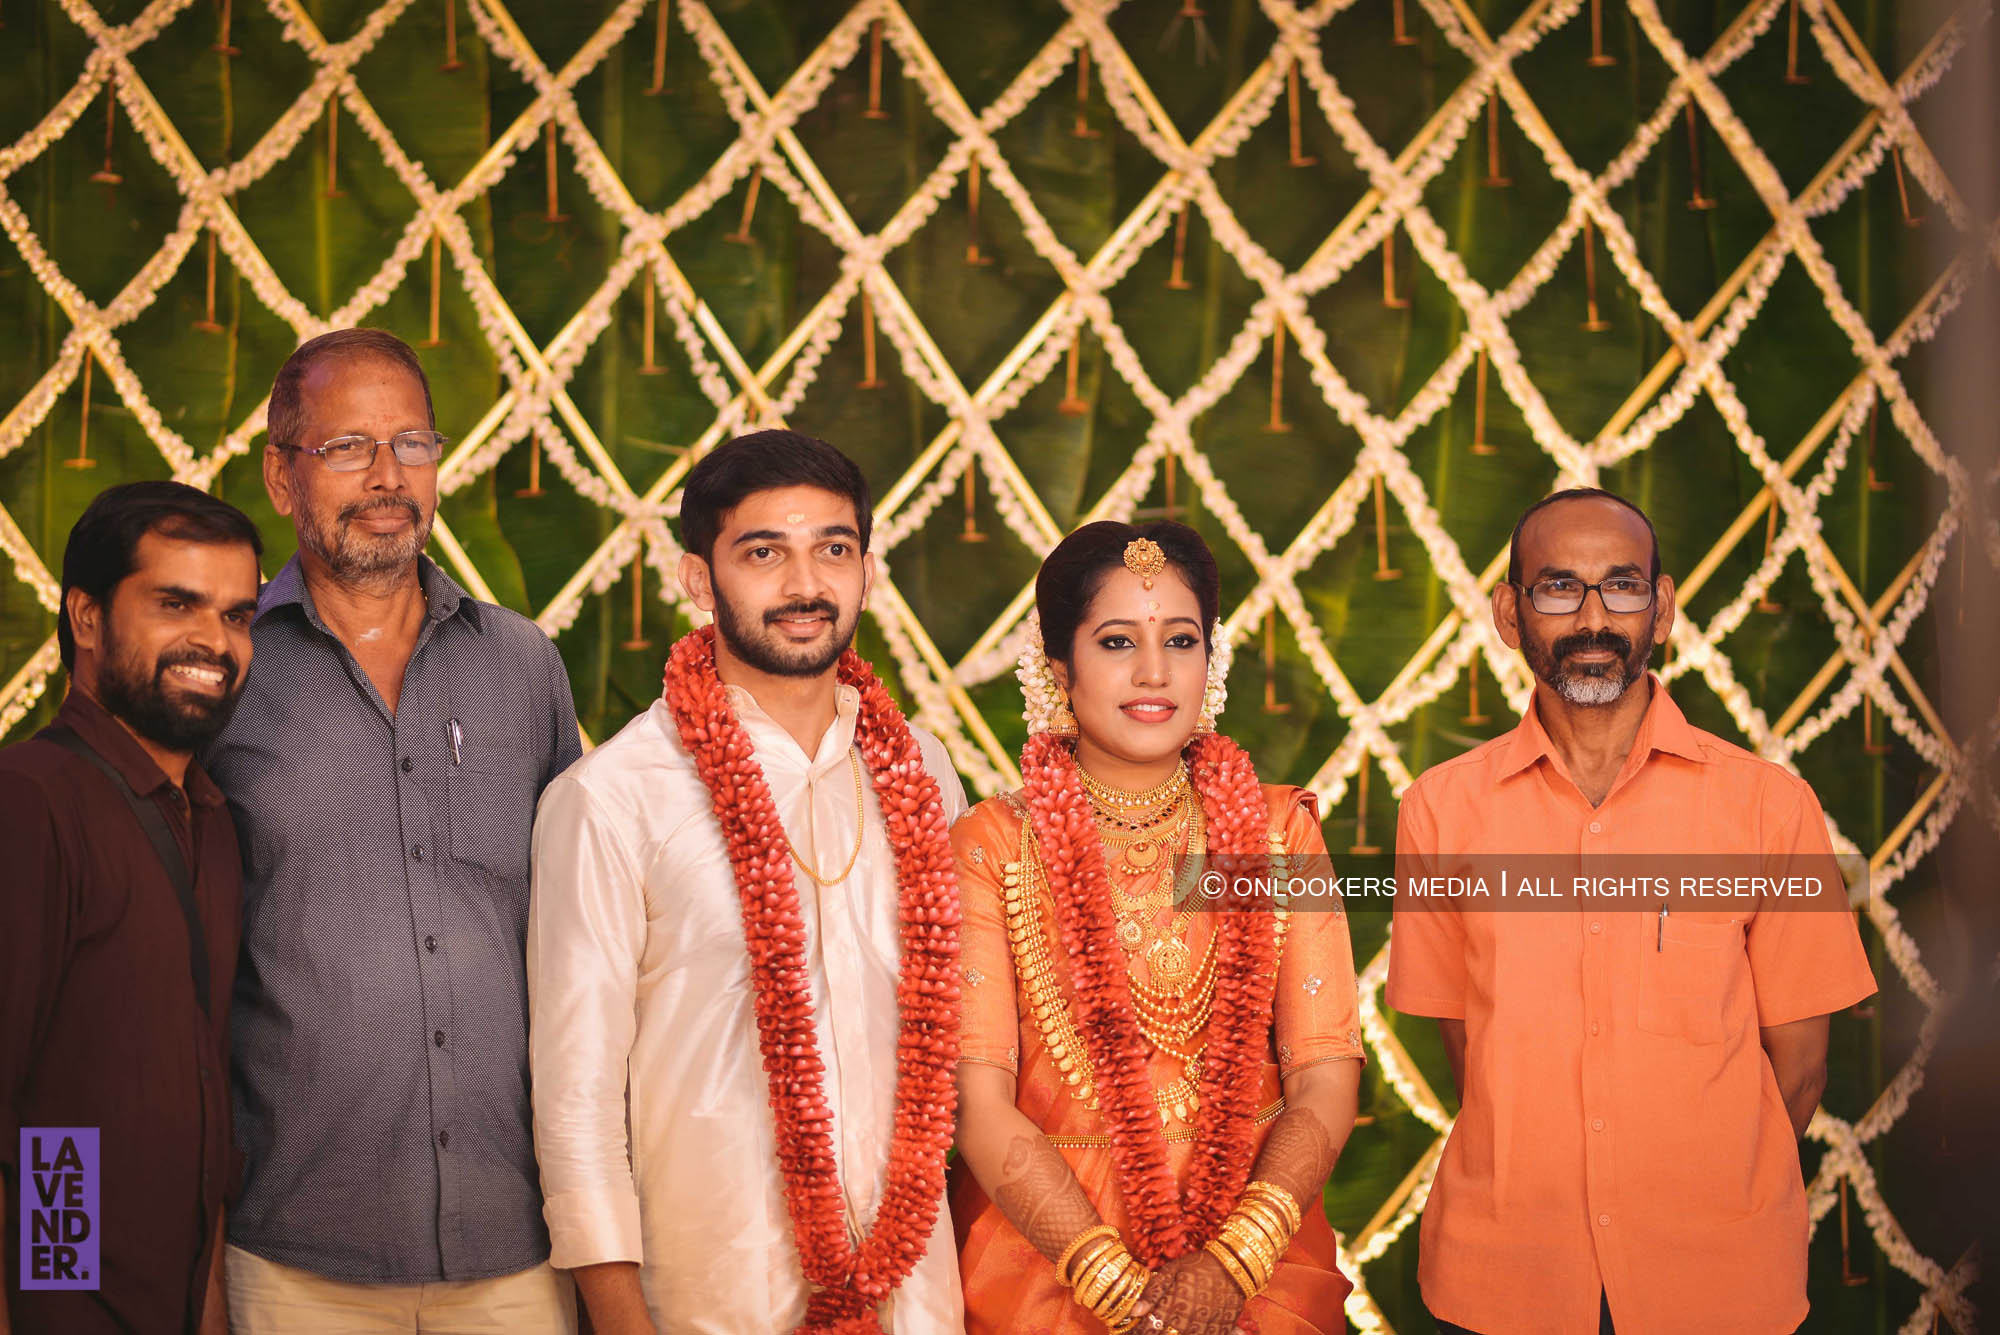 http://onlookersmedia.in/wp-content/uploads/2018/05/sreejith-vijay-wedding-stills-images-80.jpg